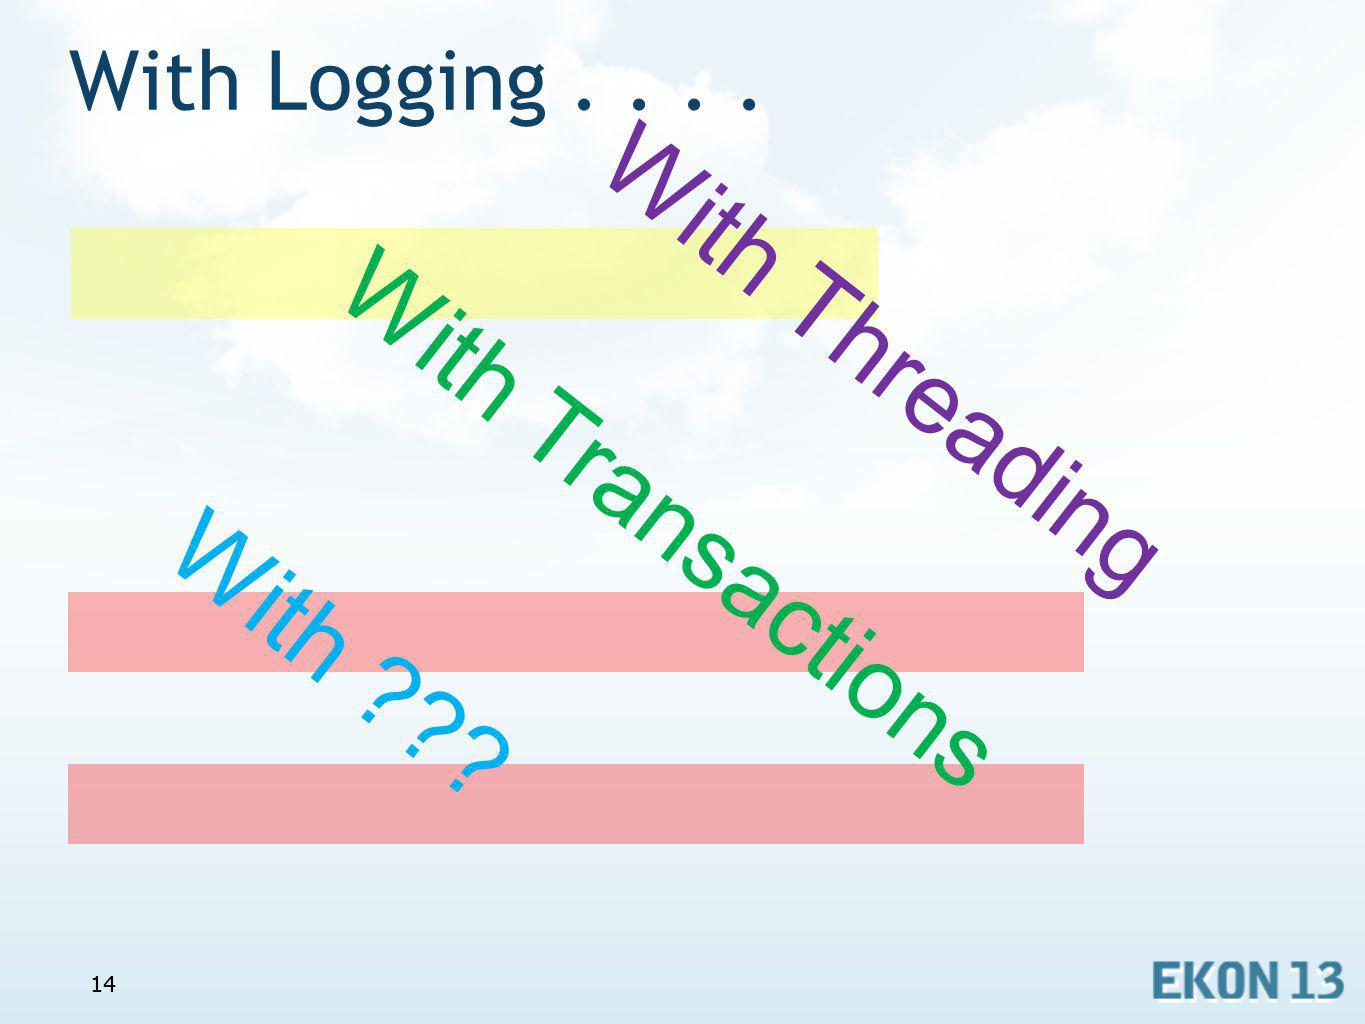 14 With Logging.... 14 With Transactions With Threading With ???